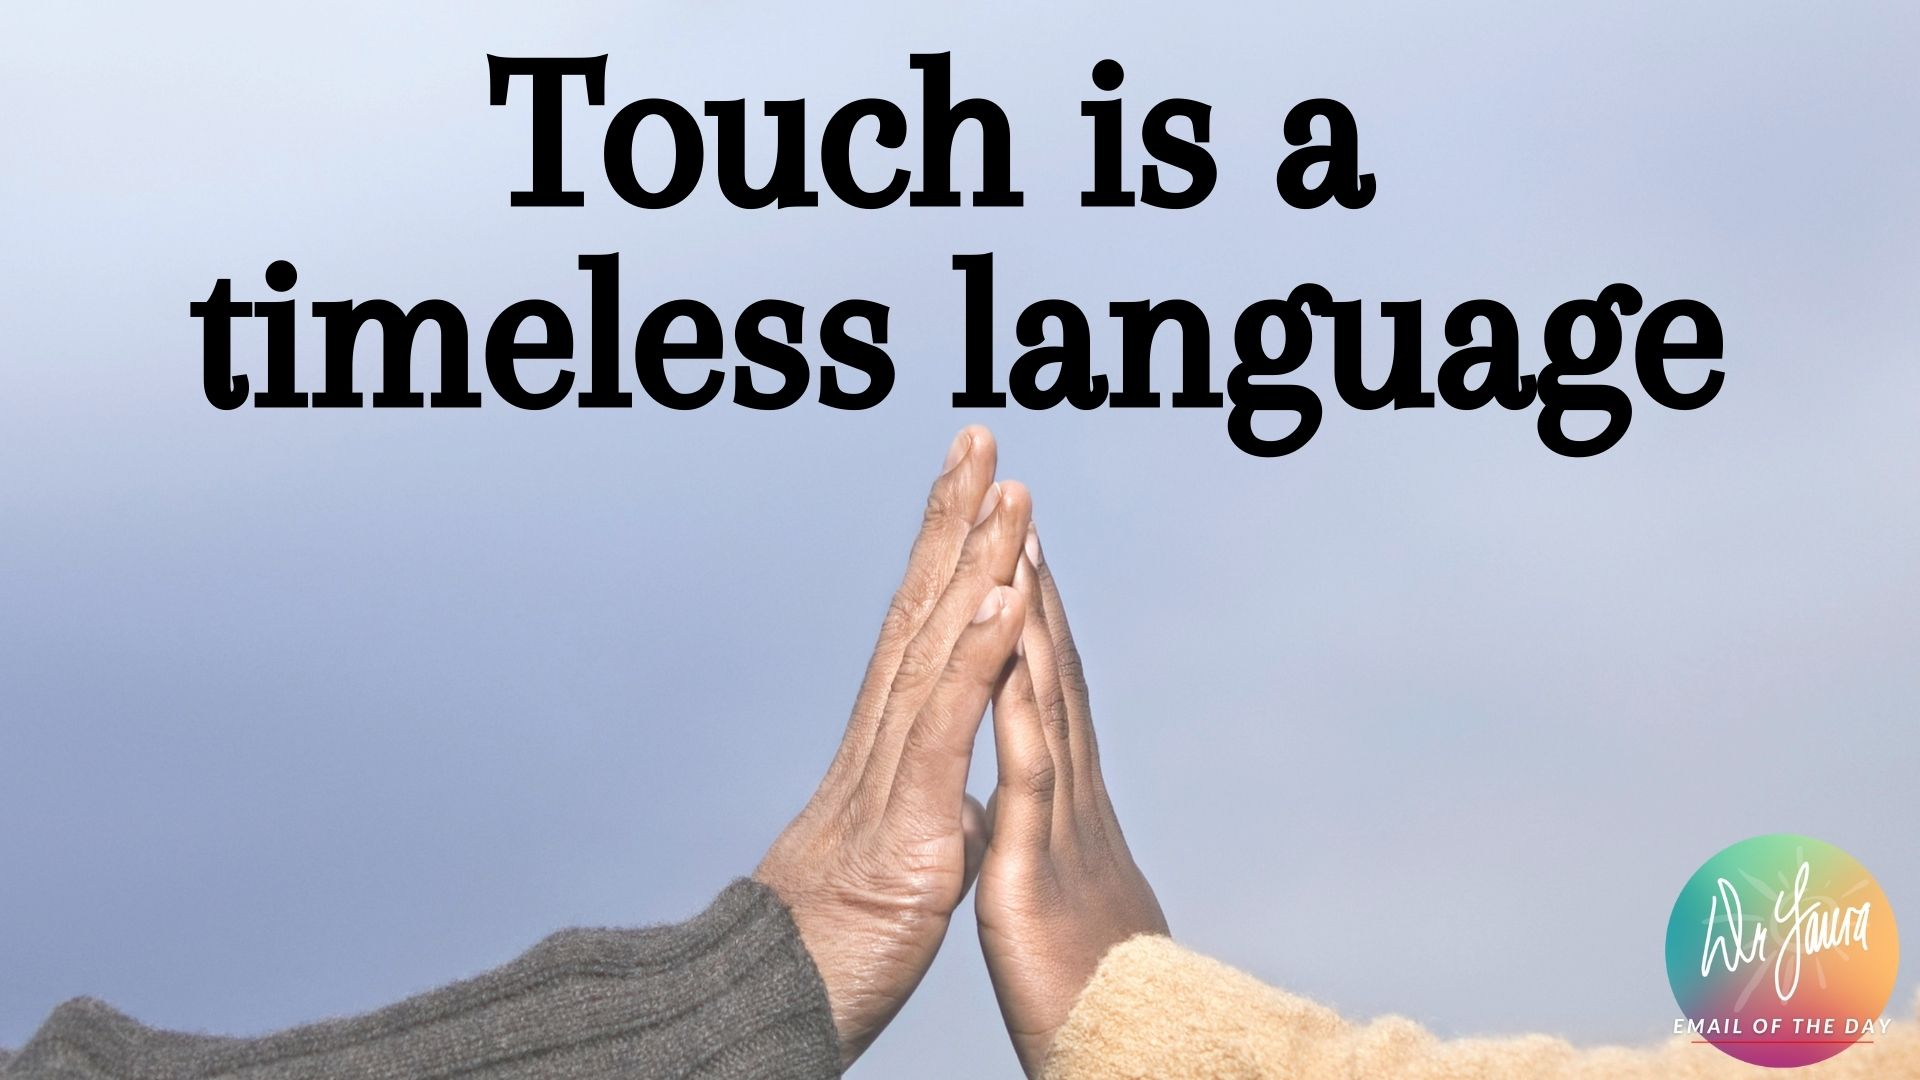 Email of the Day: The Power of Touch